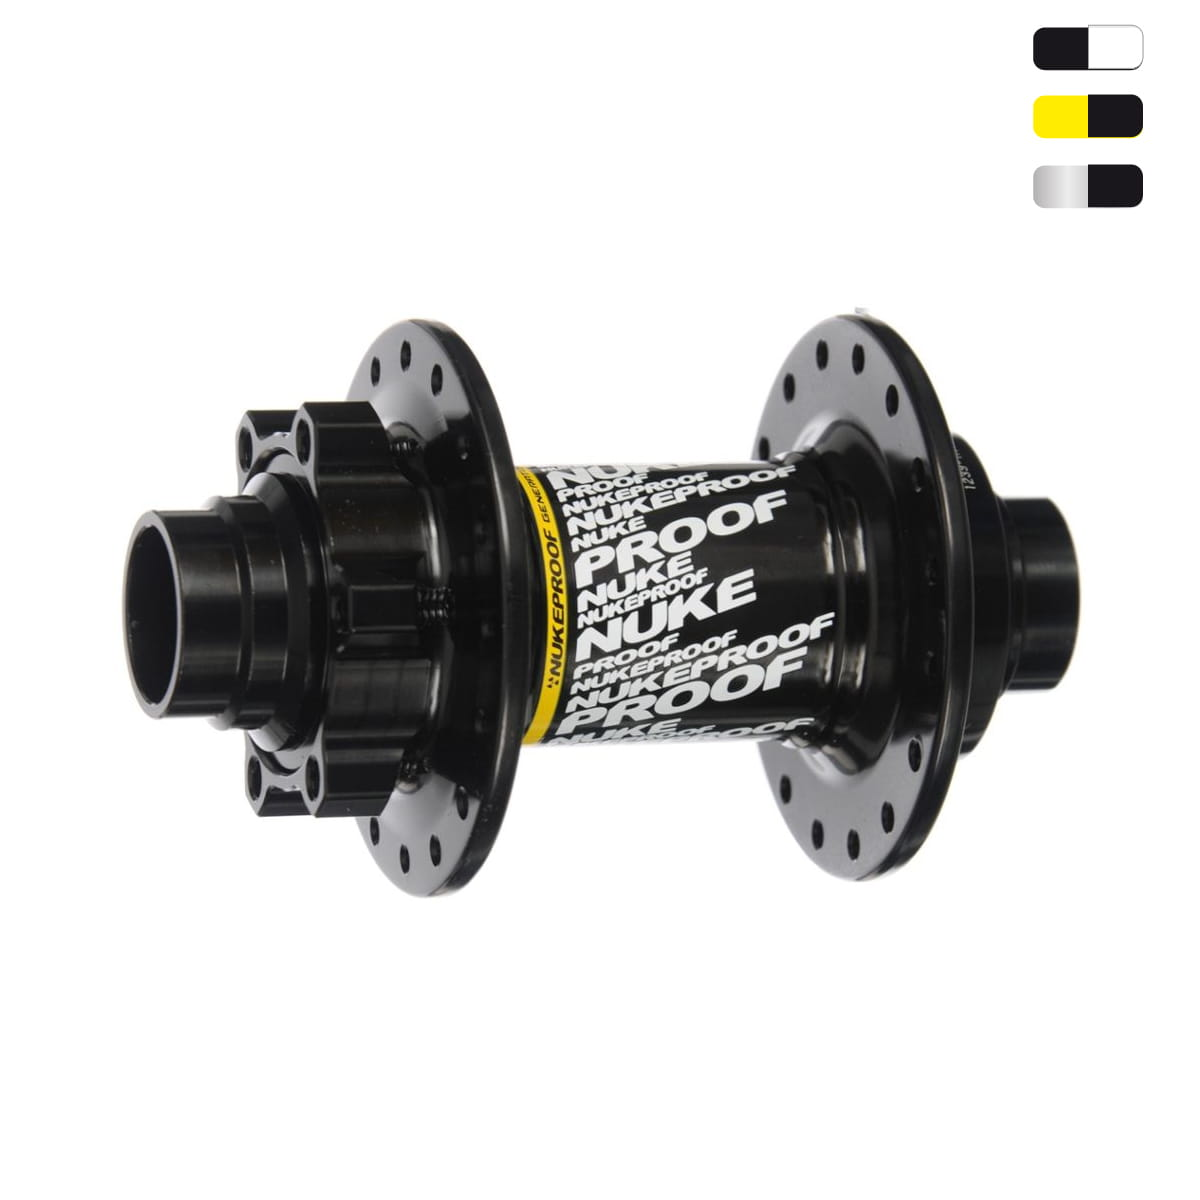 Halo Alloy High Flange Track 32h Hub Front White Bolt On Axle Fixed Gear Bikes